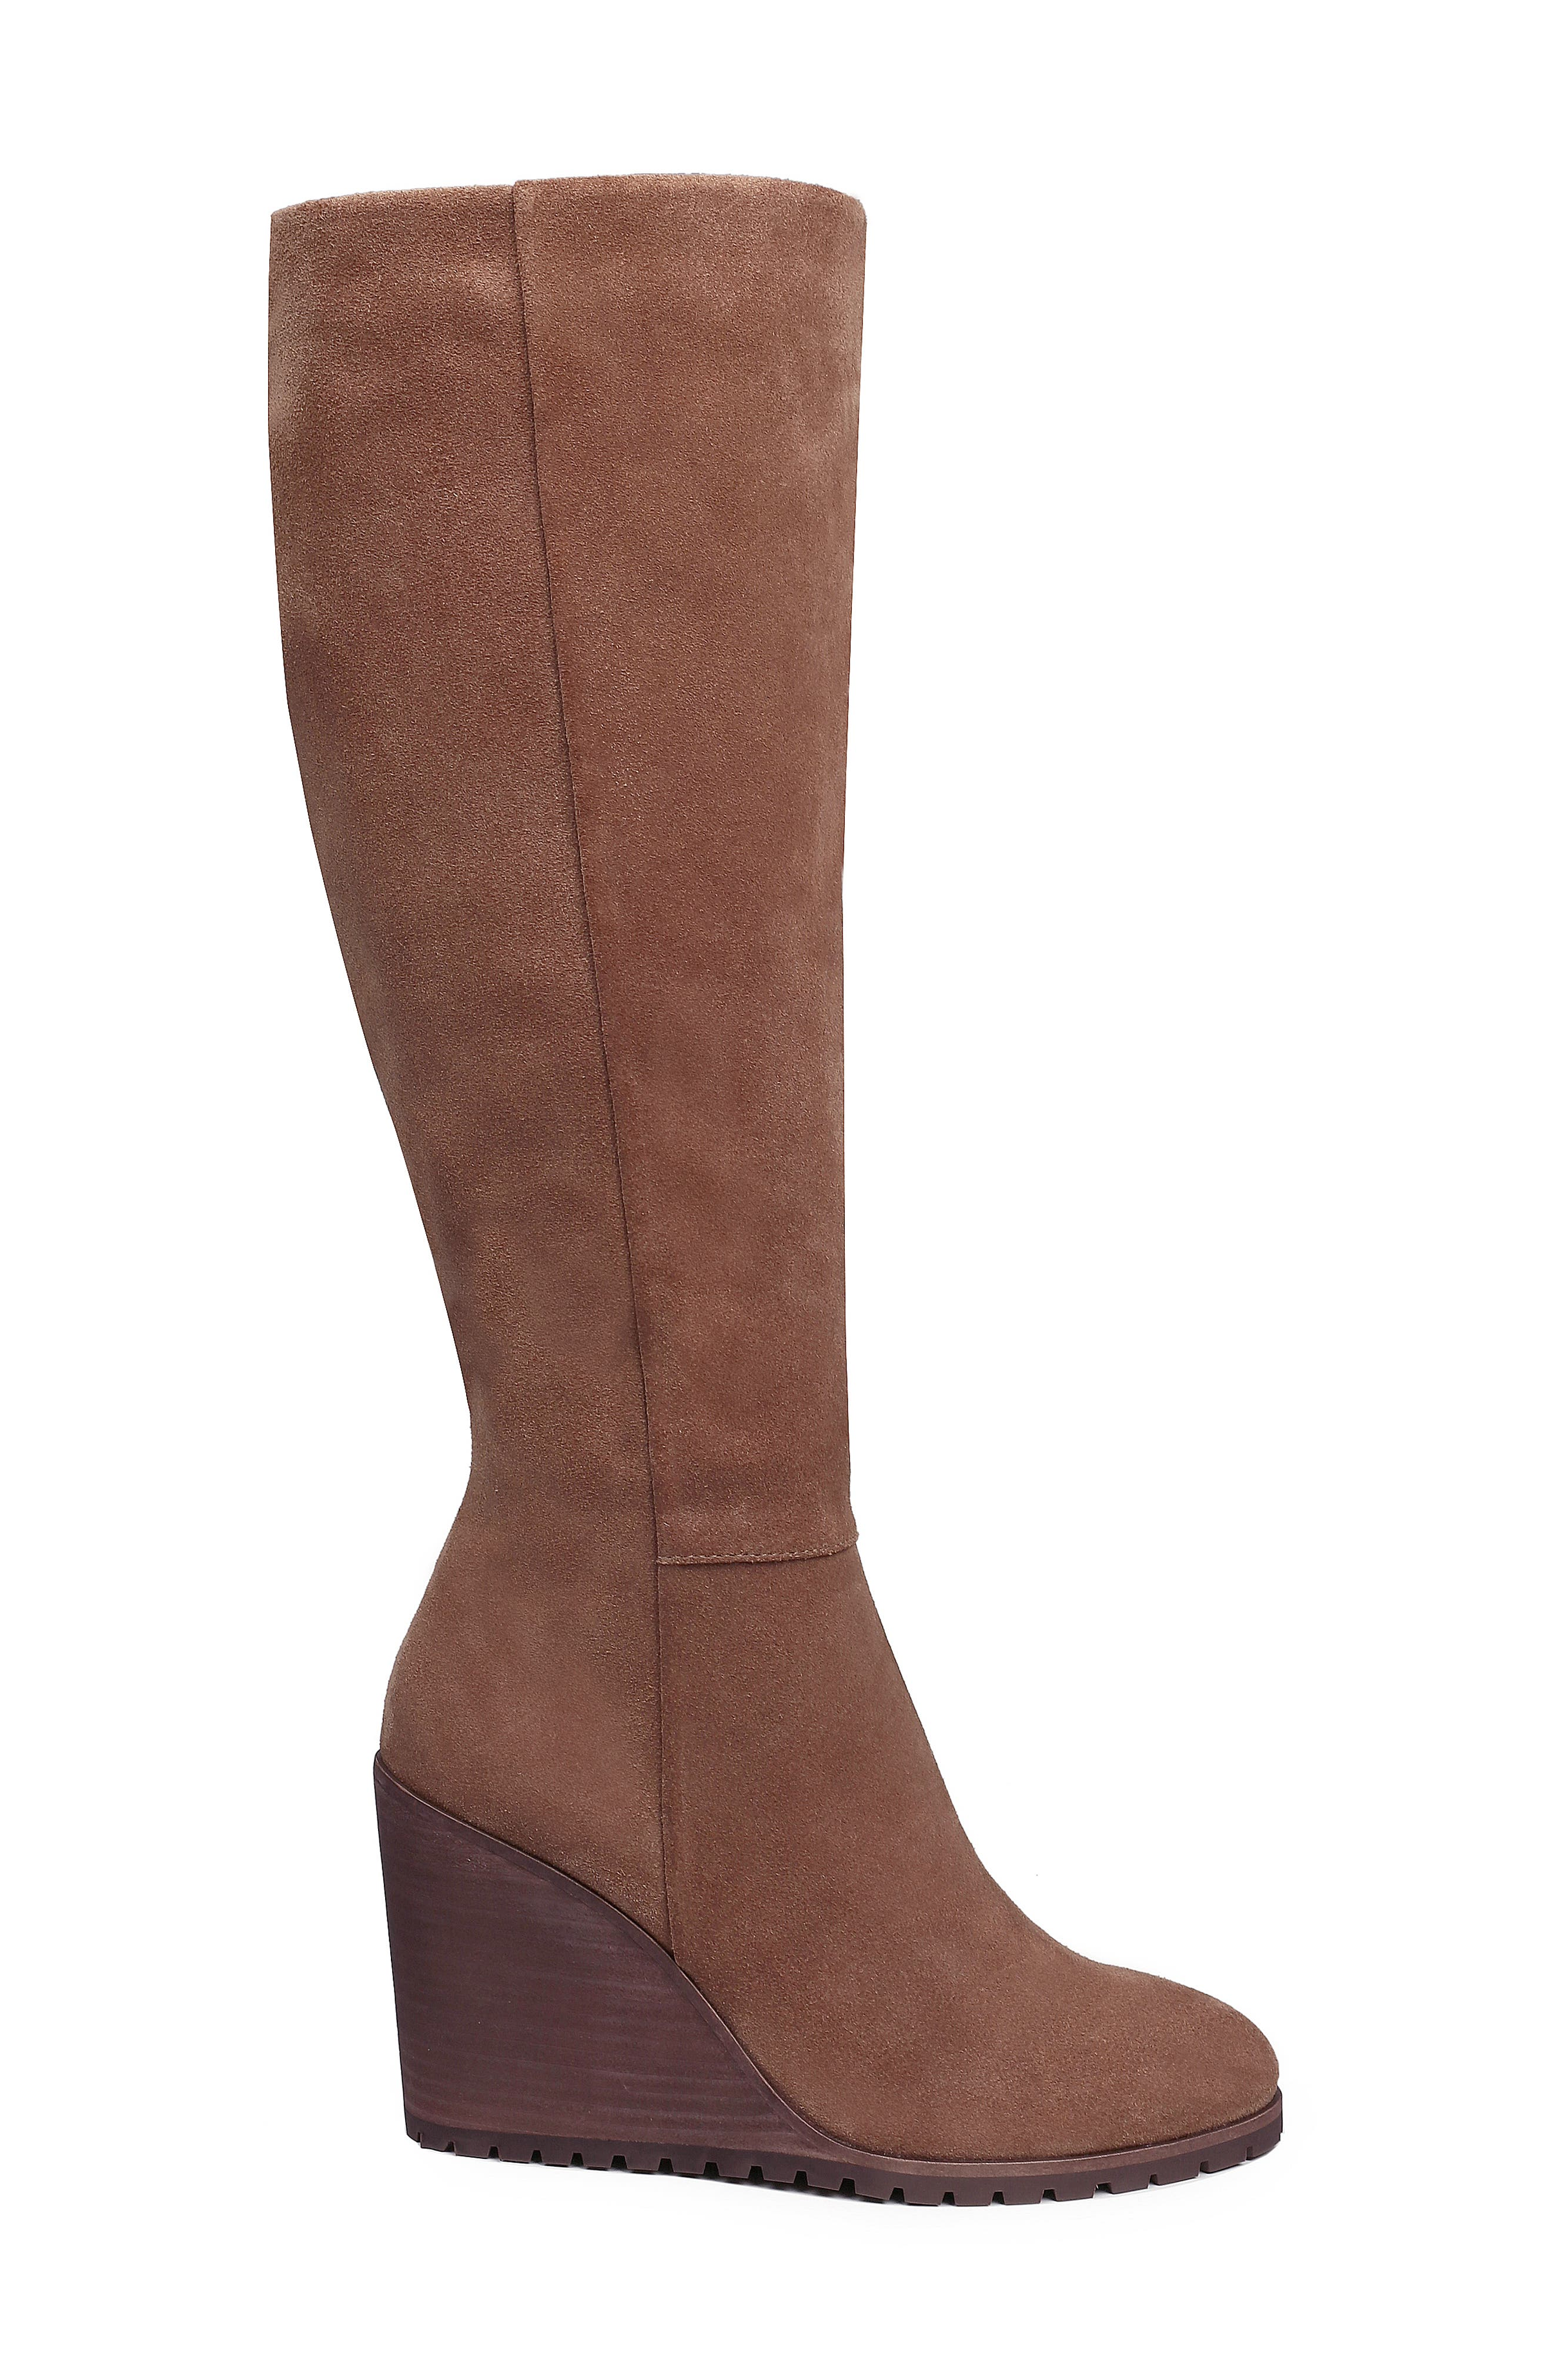 Cleveland Wedge Boot,                             Alternate thumbnail 3, color,                             LIGHT BROWN SUEDE